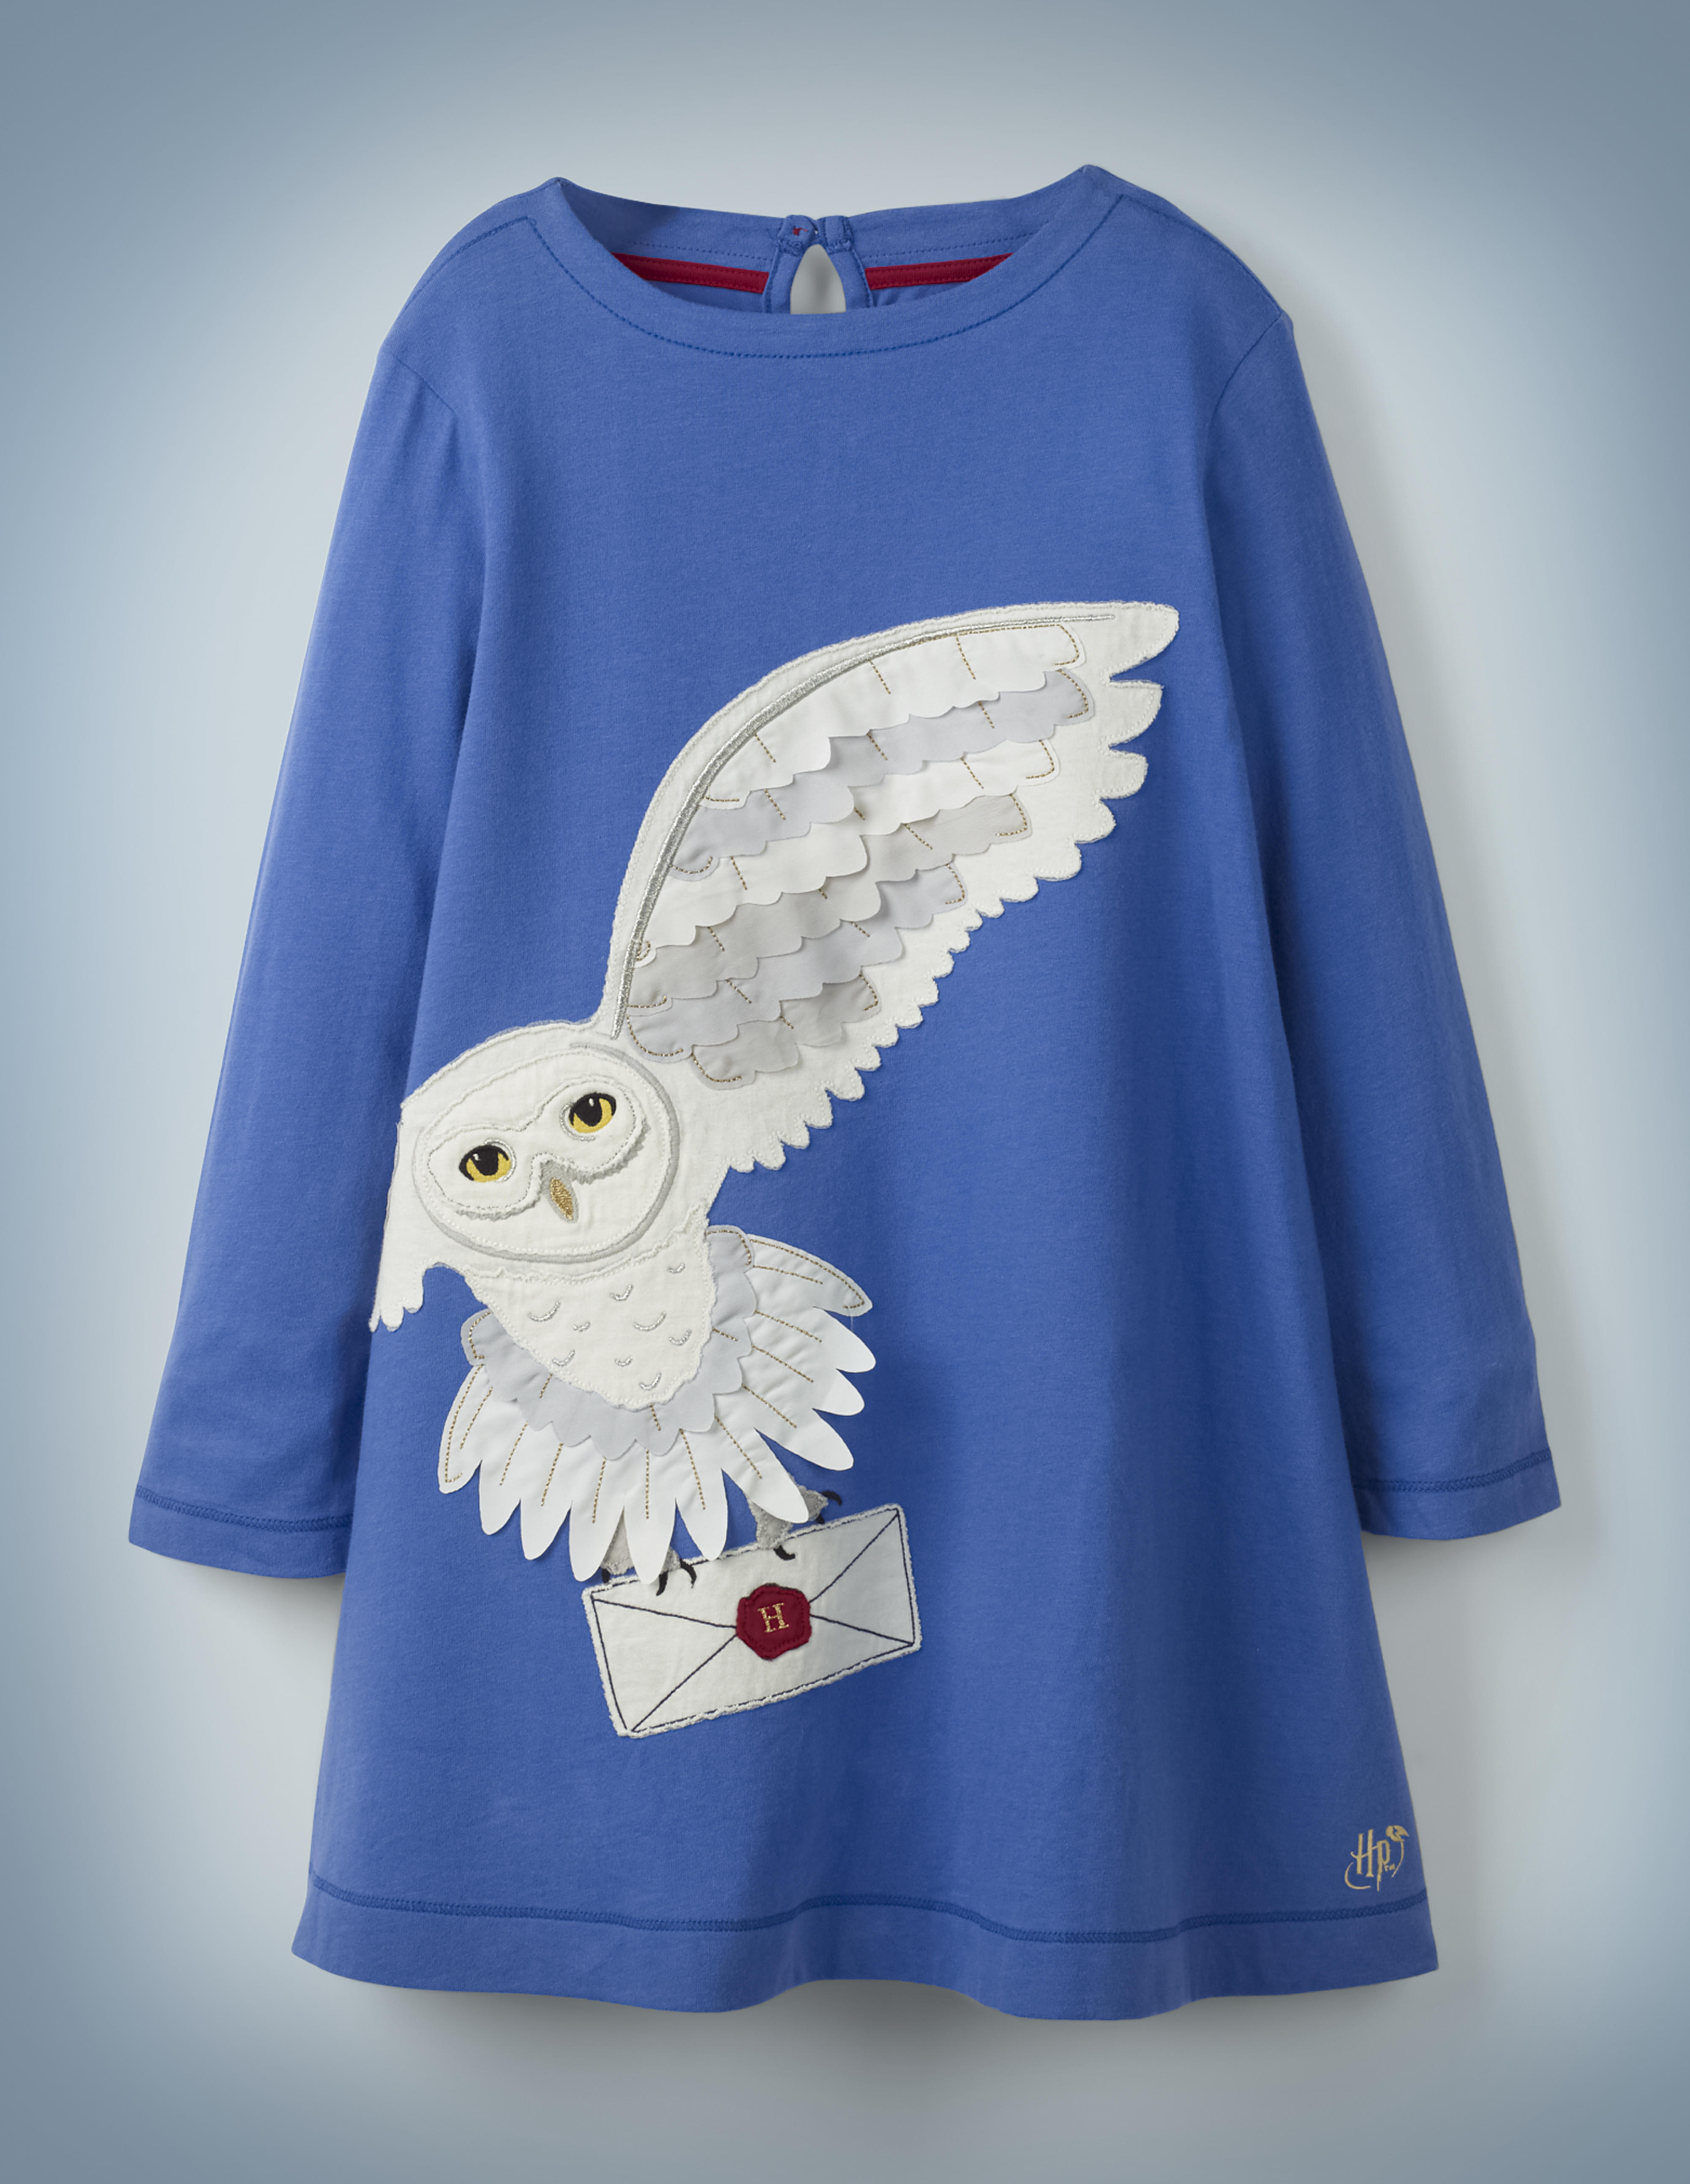 The Mini Boden Hedwig Post Dress in blue features a large, off-center image of Harry Potter's beloved owl carrying a Hogwarts acceptance letter in her talons. It retails between £28 and £32.